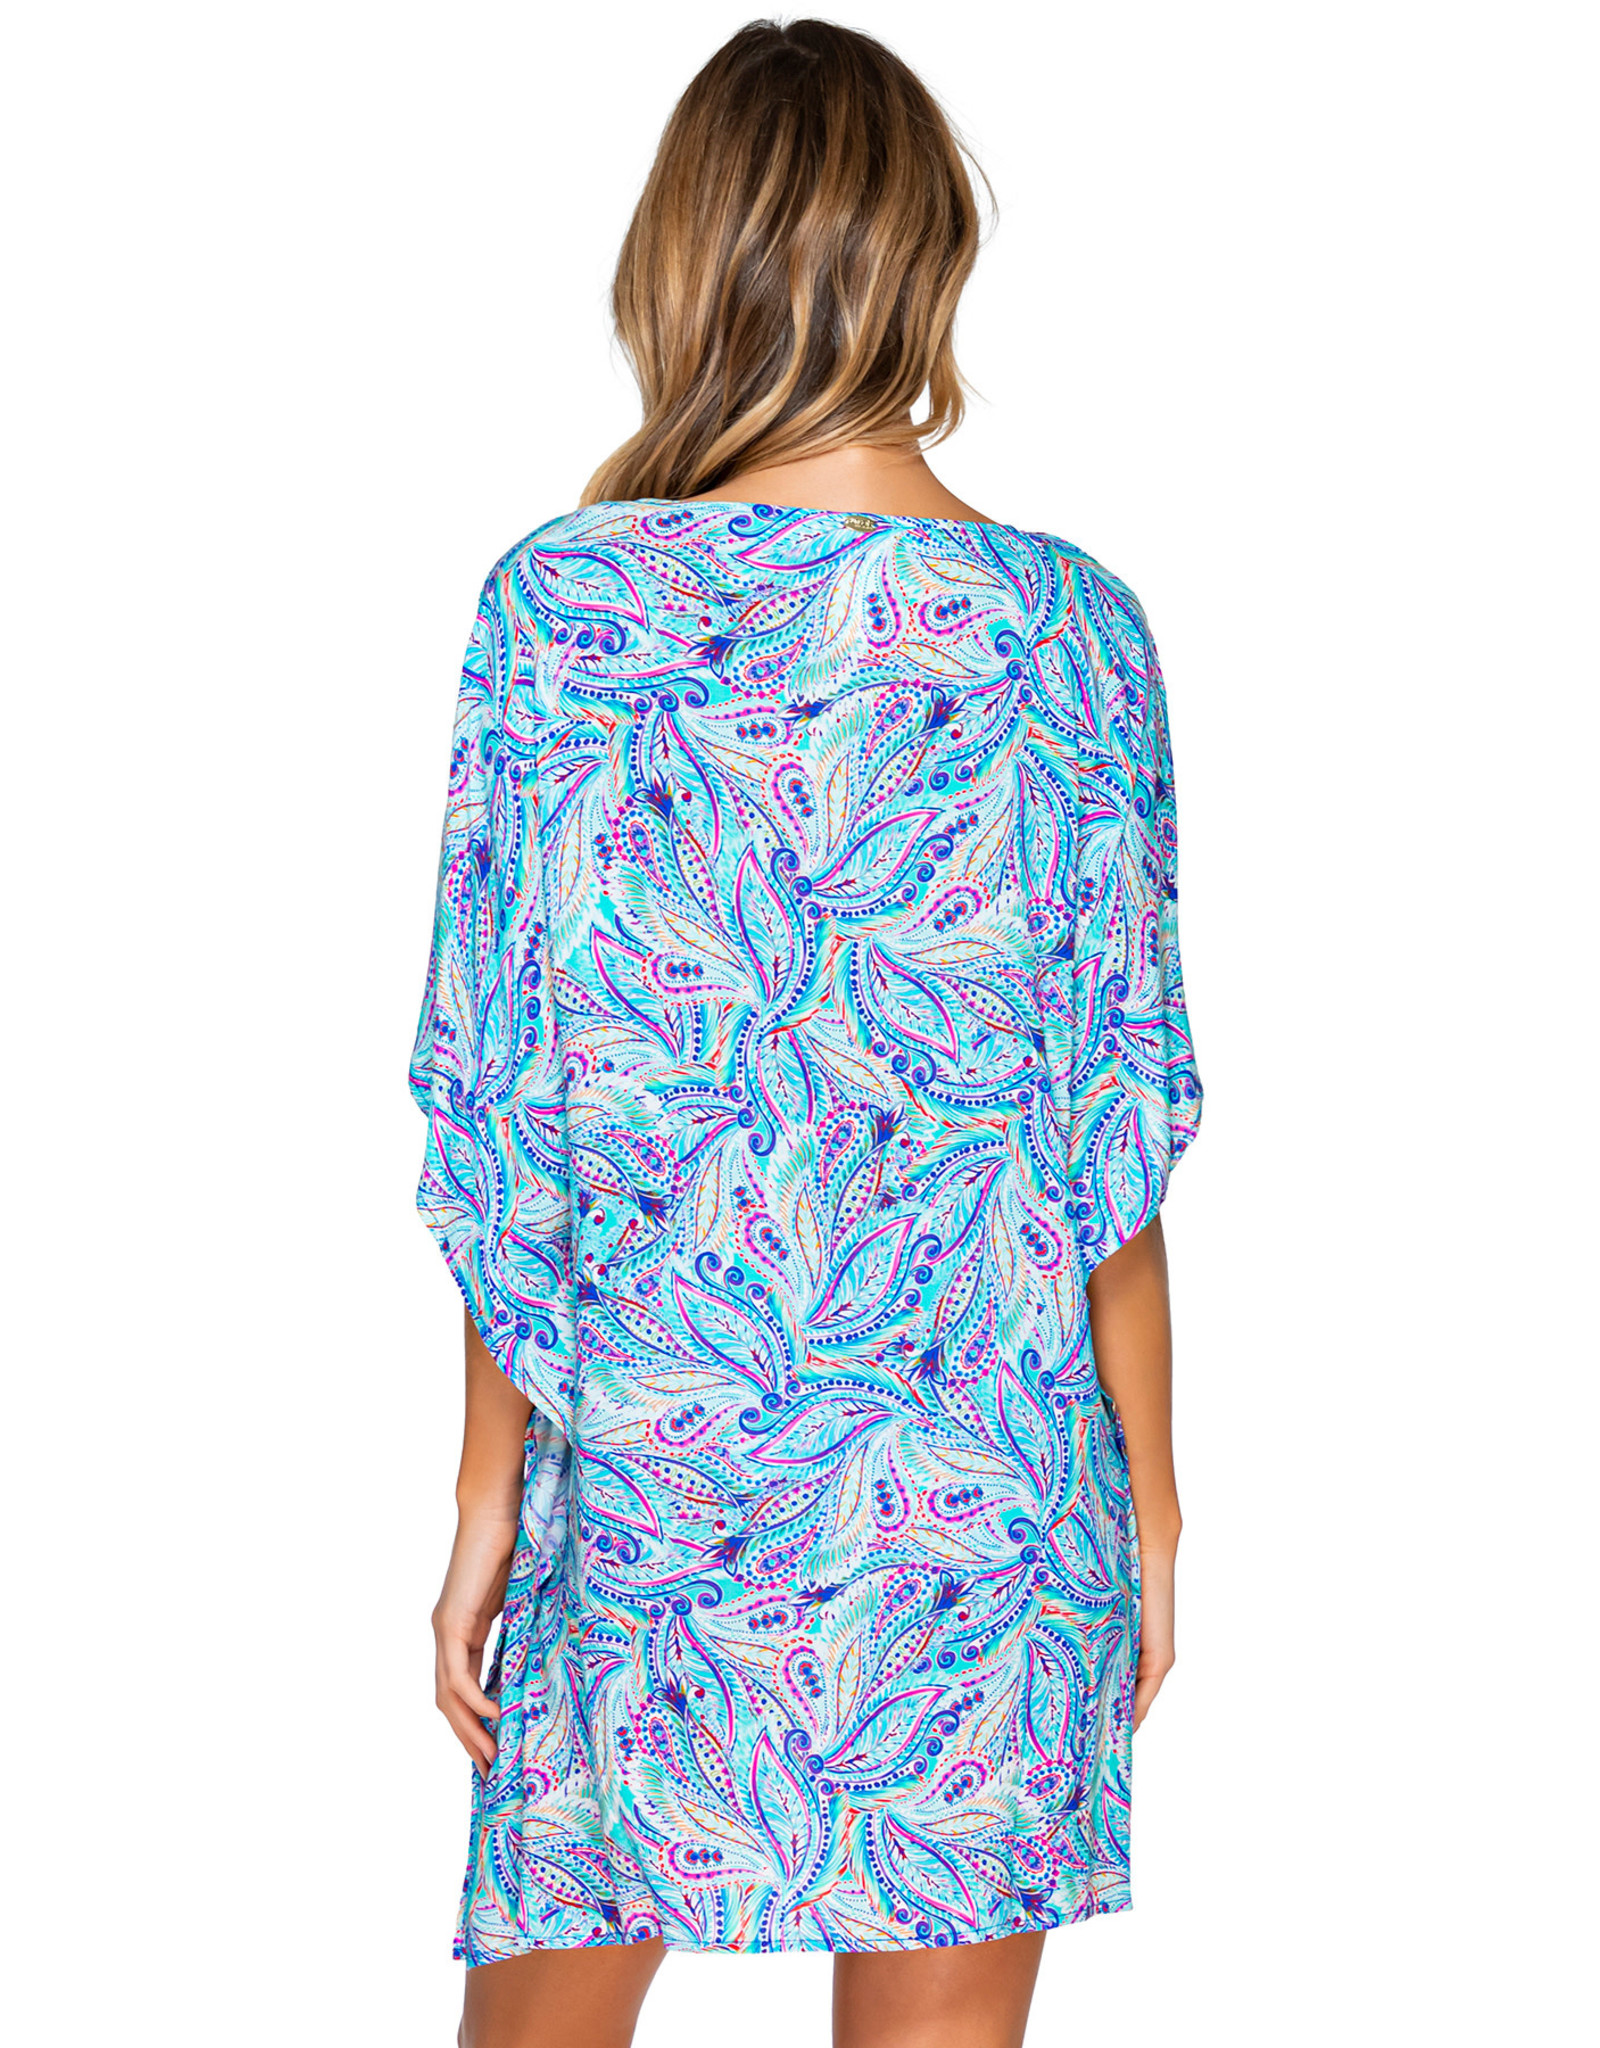 SUNSETS 927 Tulum Tunic